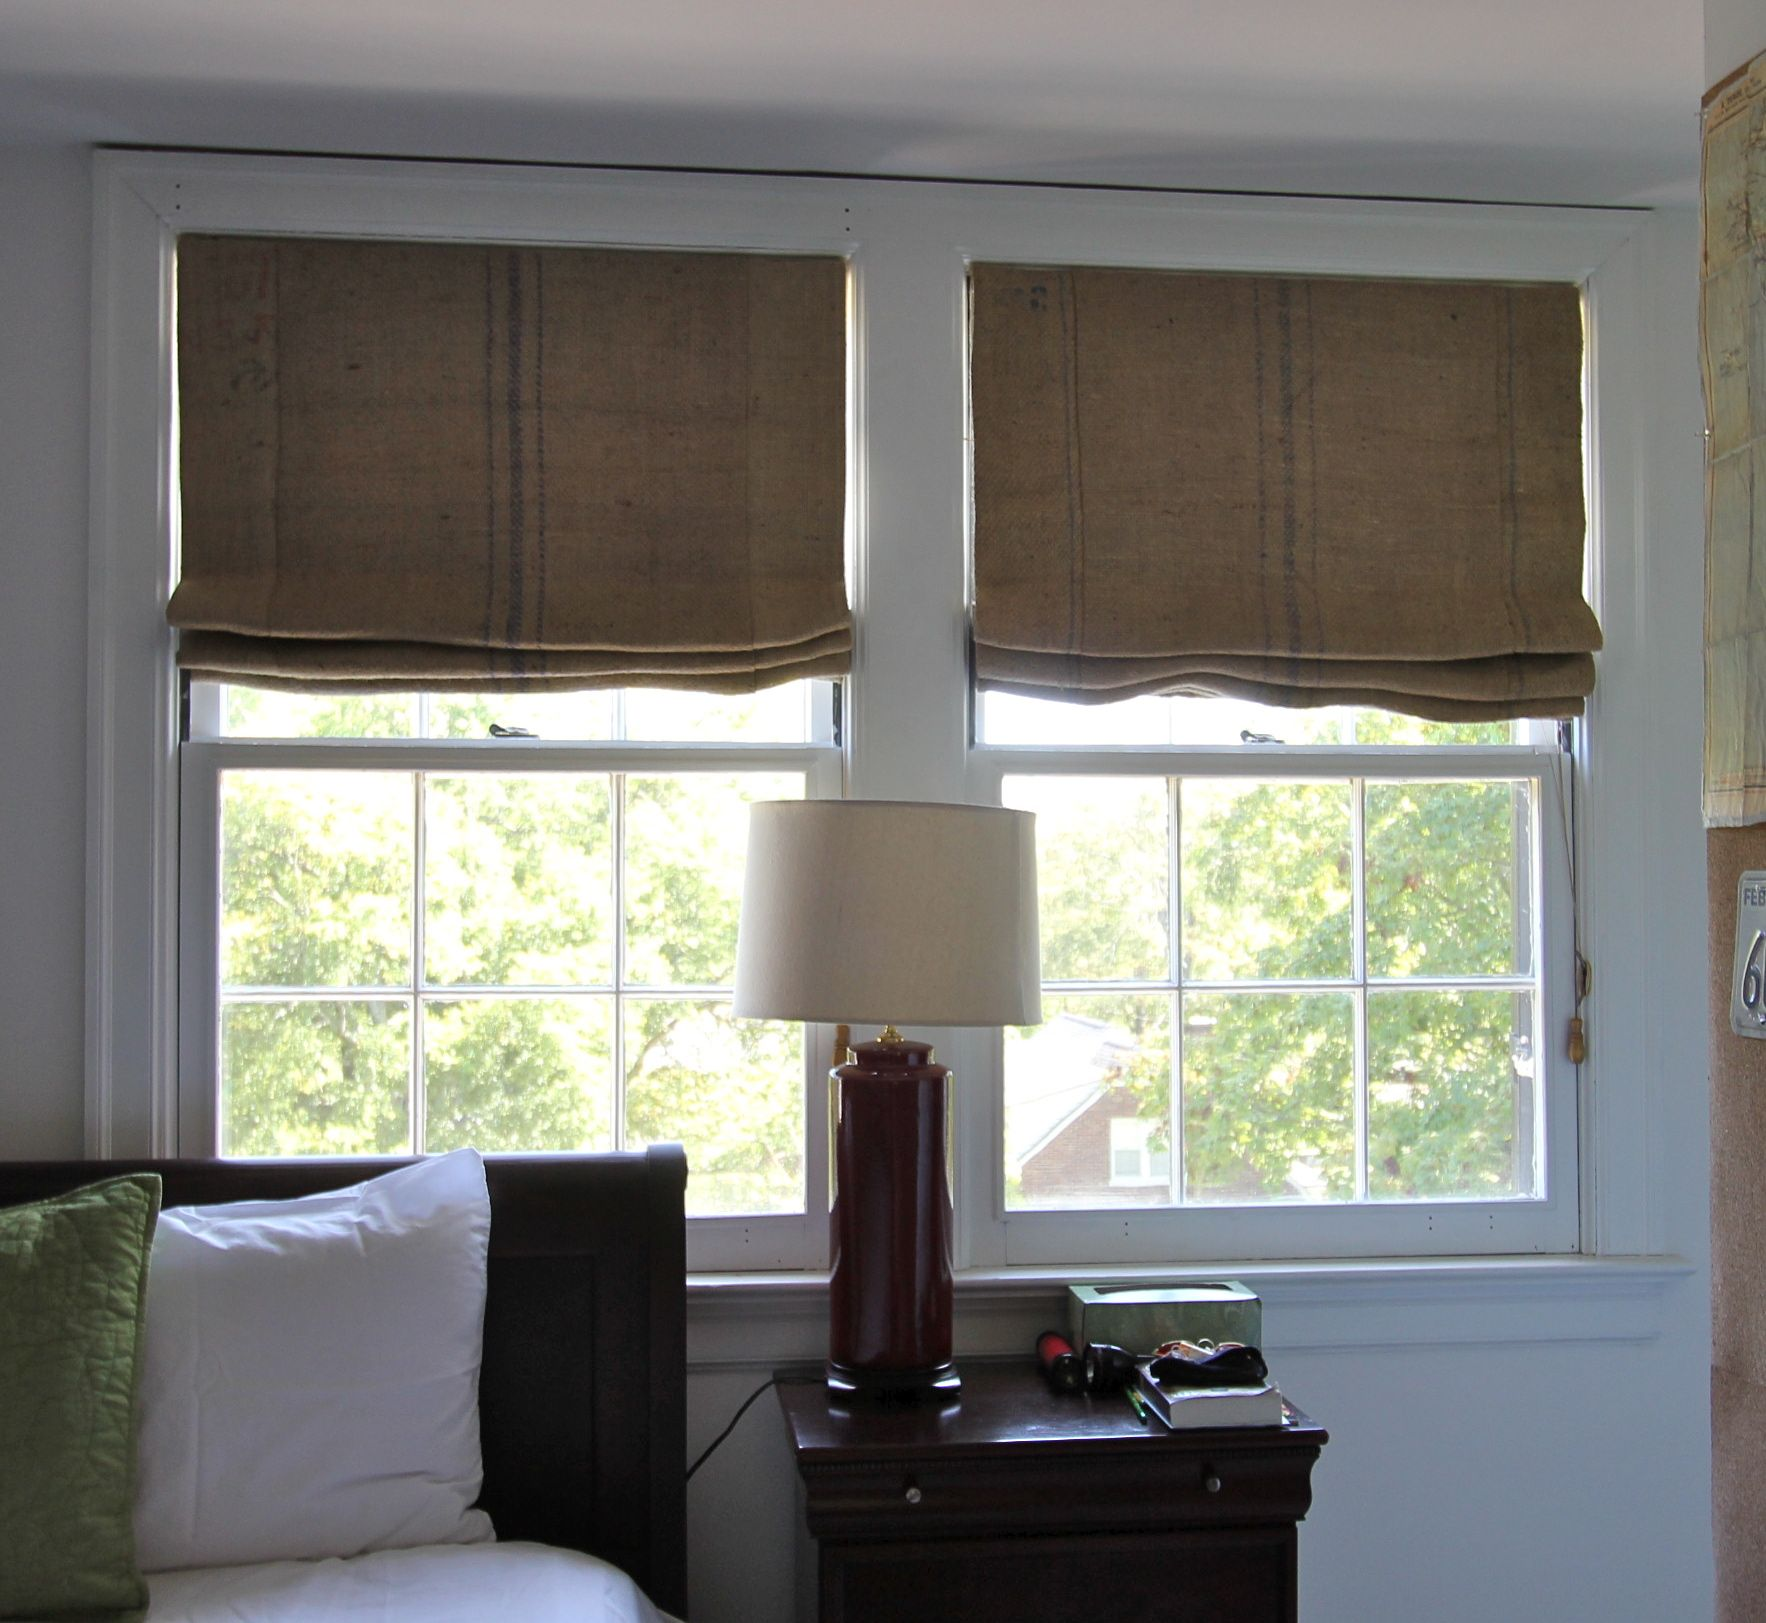 Burlap Roman Shades Eclectic Bedroom Cool Curtains Home Living Room